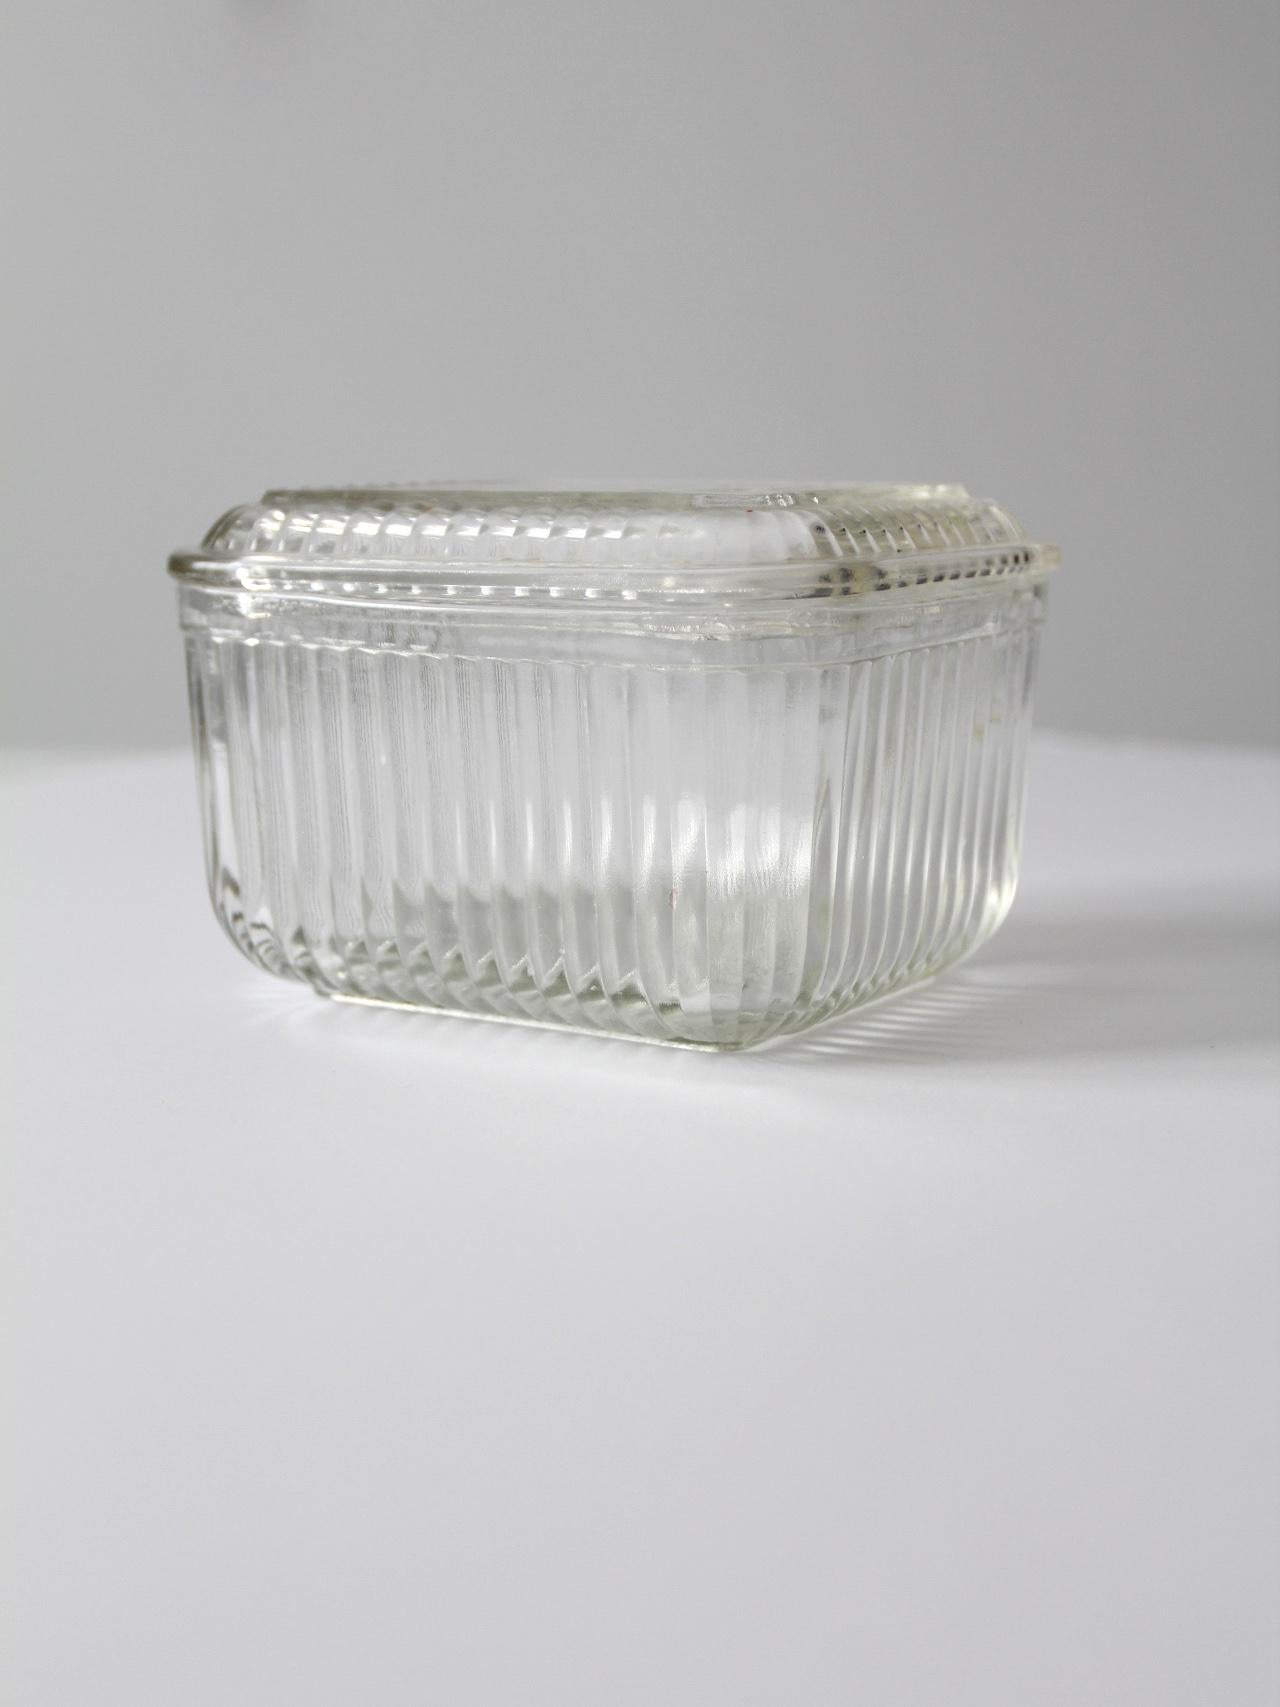 Vintage Federal Glass Refrigerator Dish Chairish